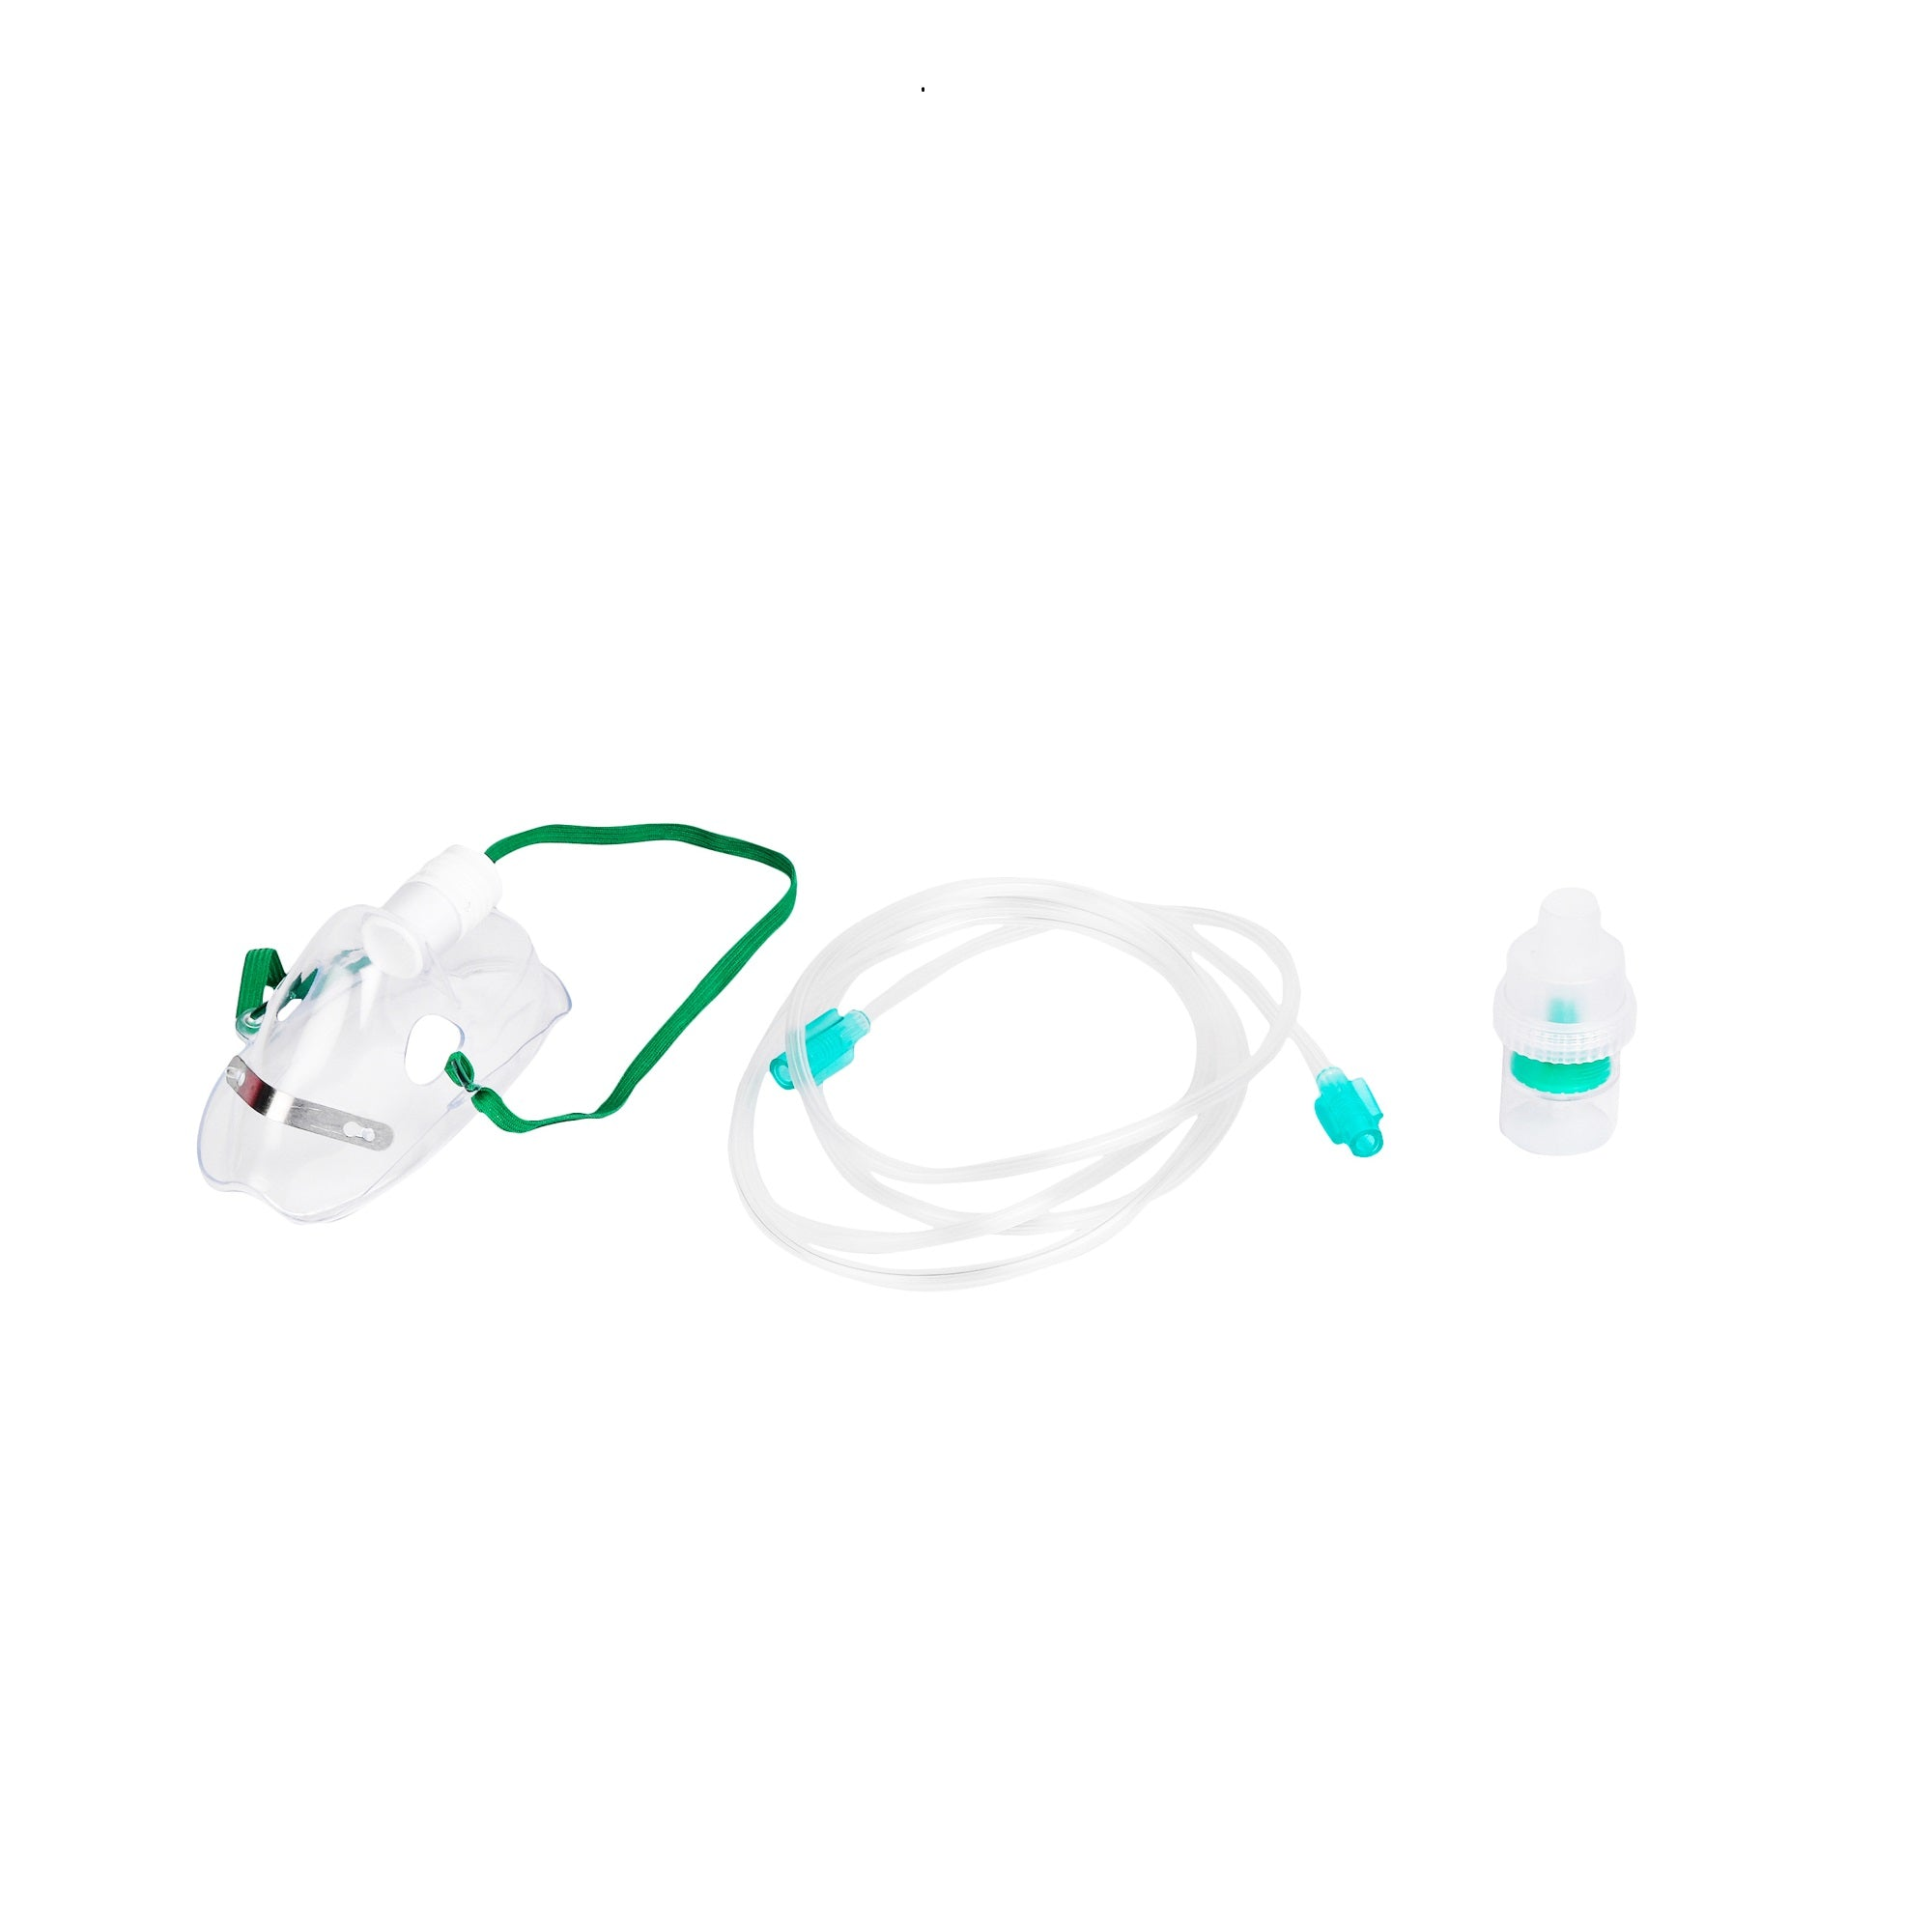 Control D Adult Mask Kit with Air Tube, Medicine Chamber & Mask Nebulizer